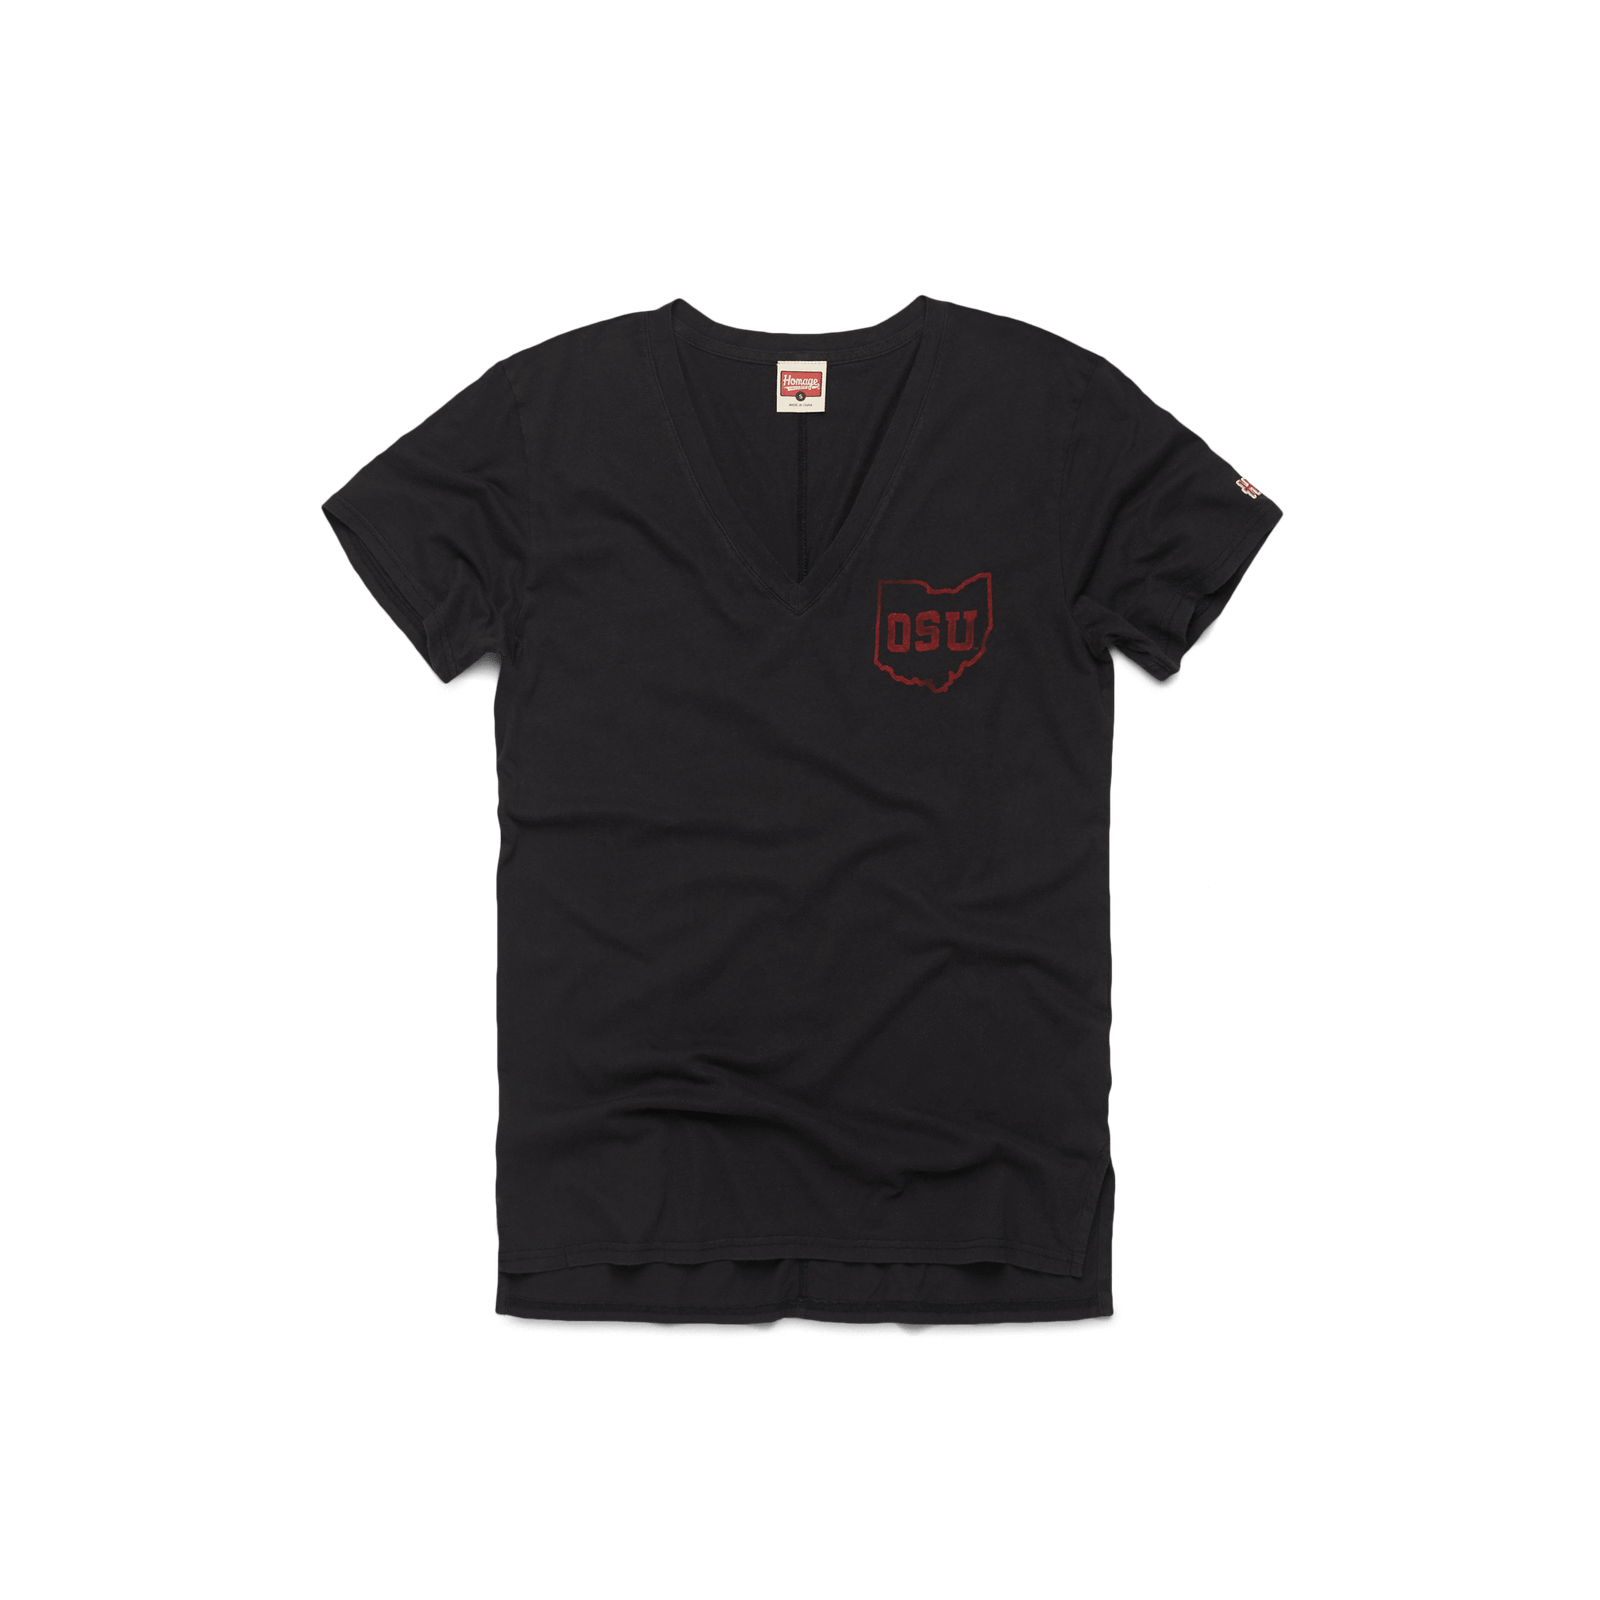 Women's THE OSU Garment Dyed V-Neck